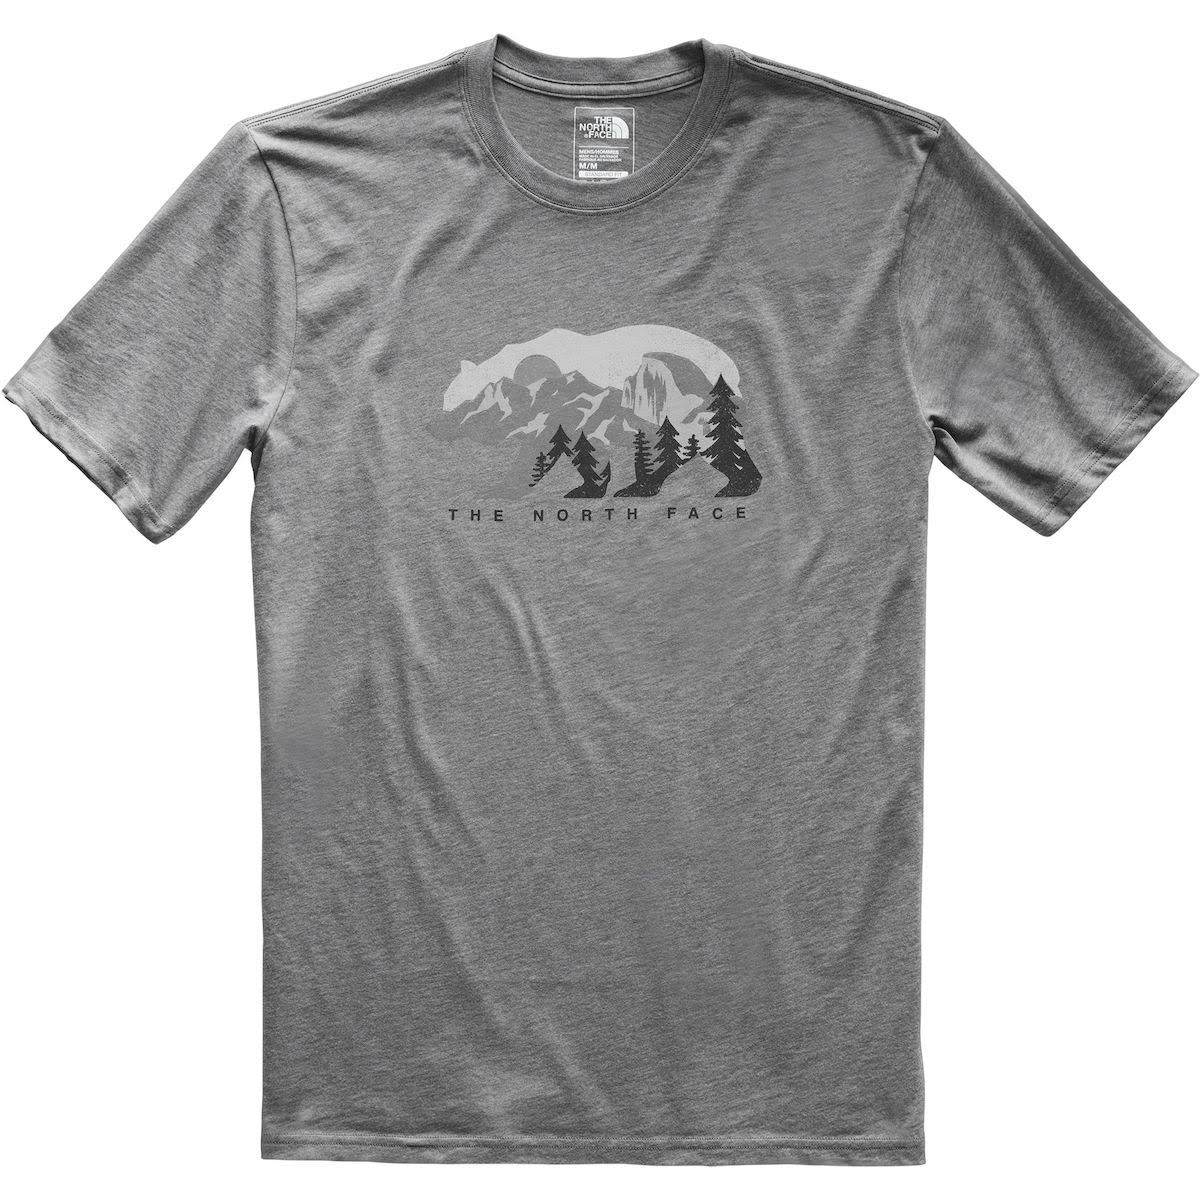 The North Face Men's Bearitage Rights T Shirt - Gray